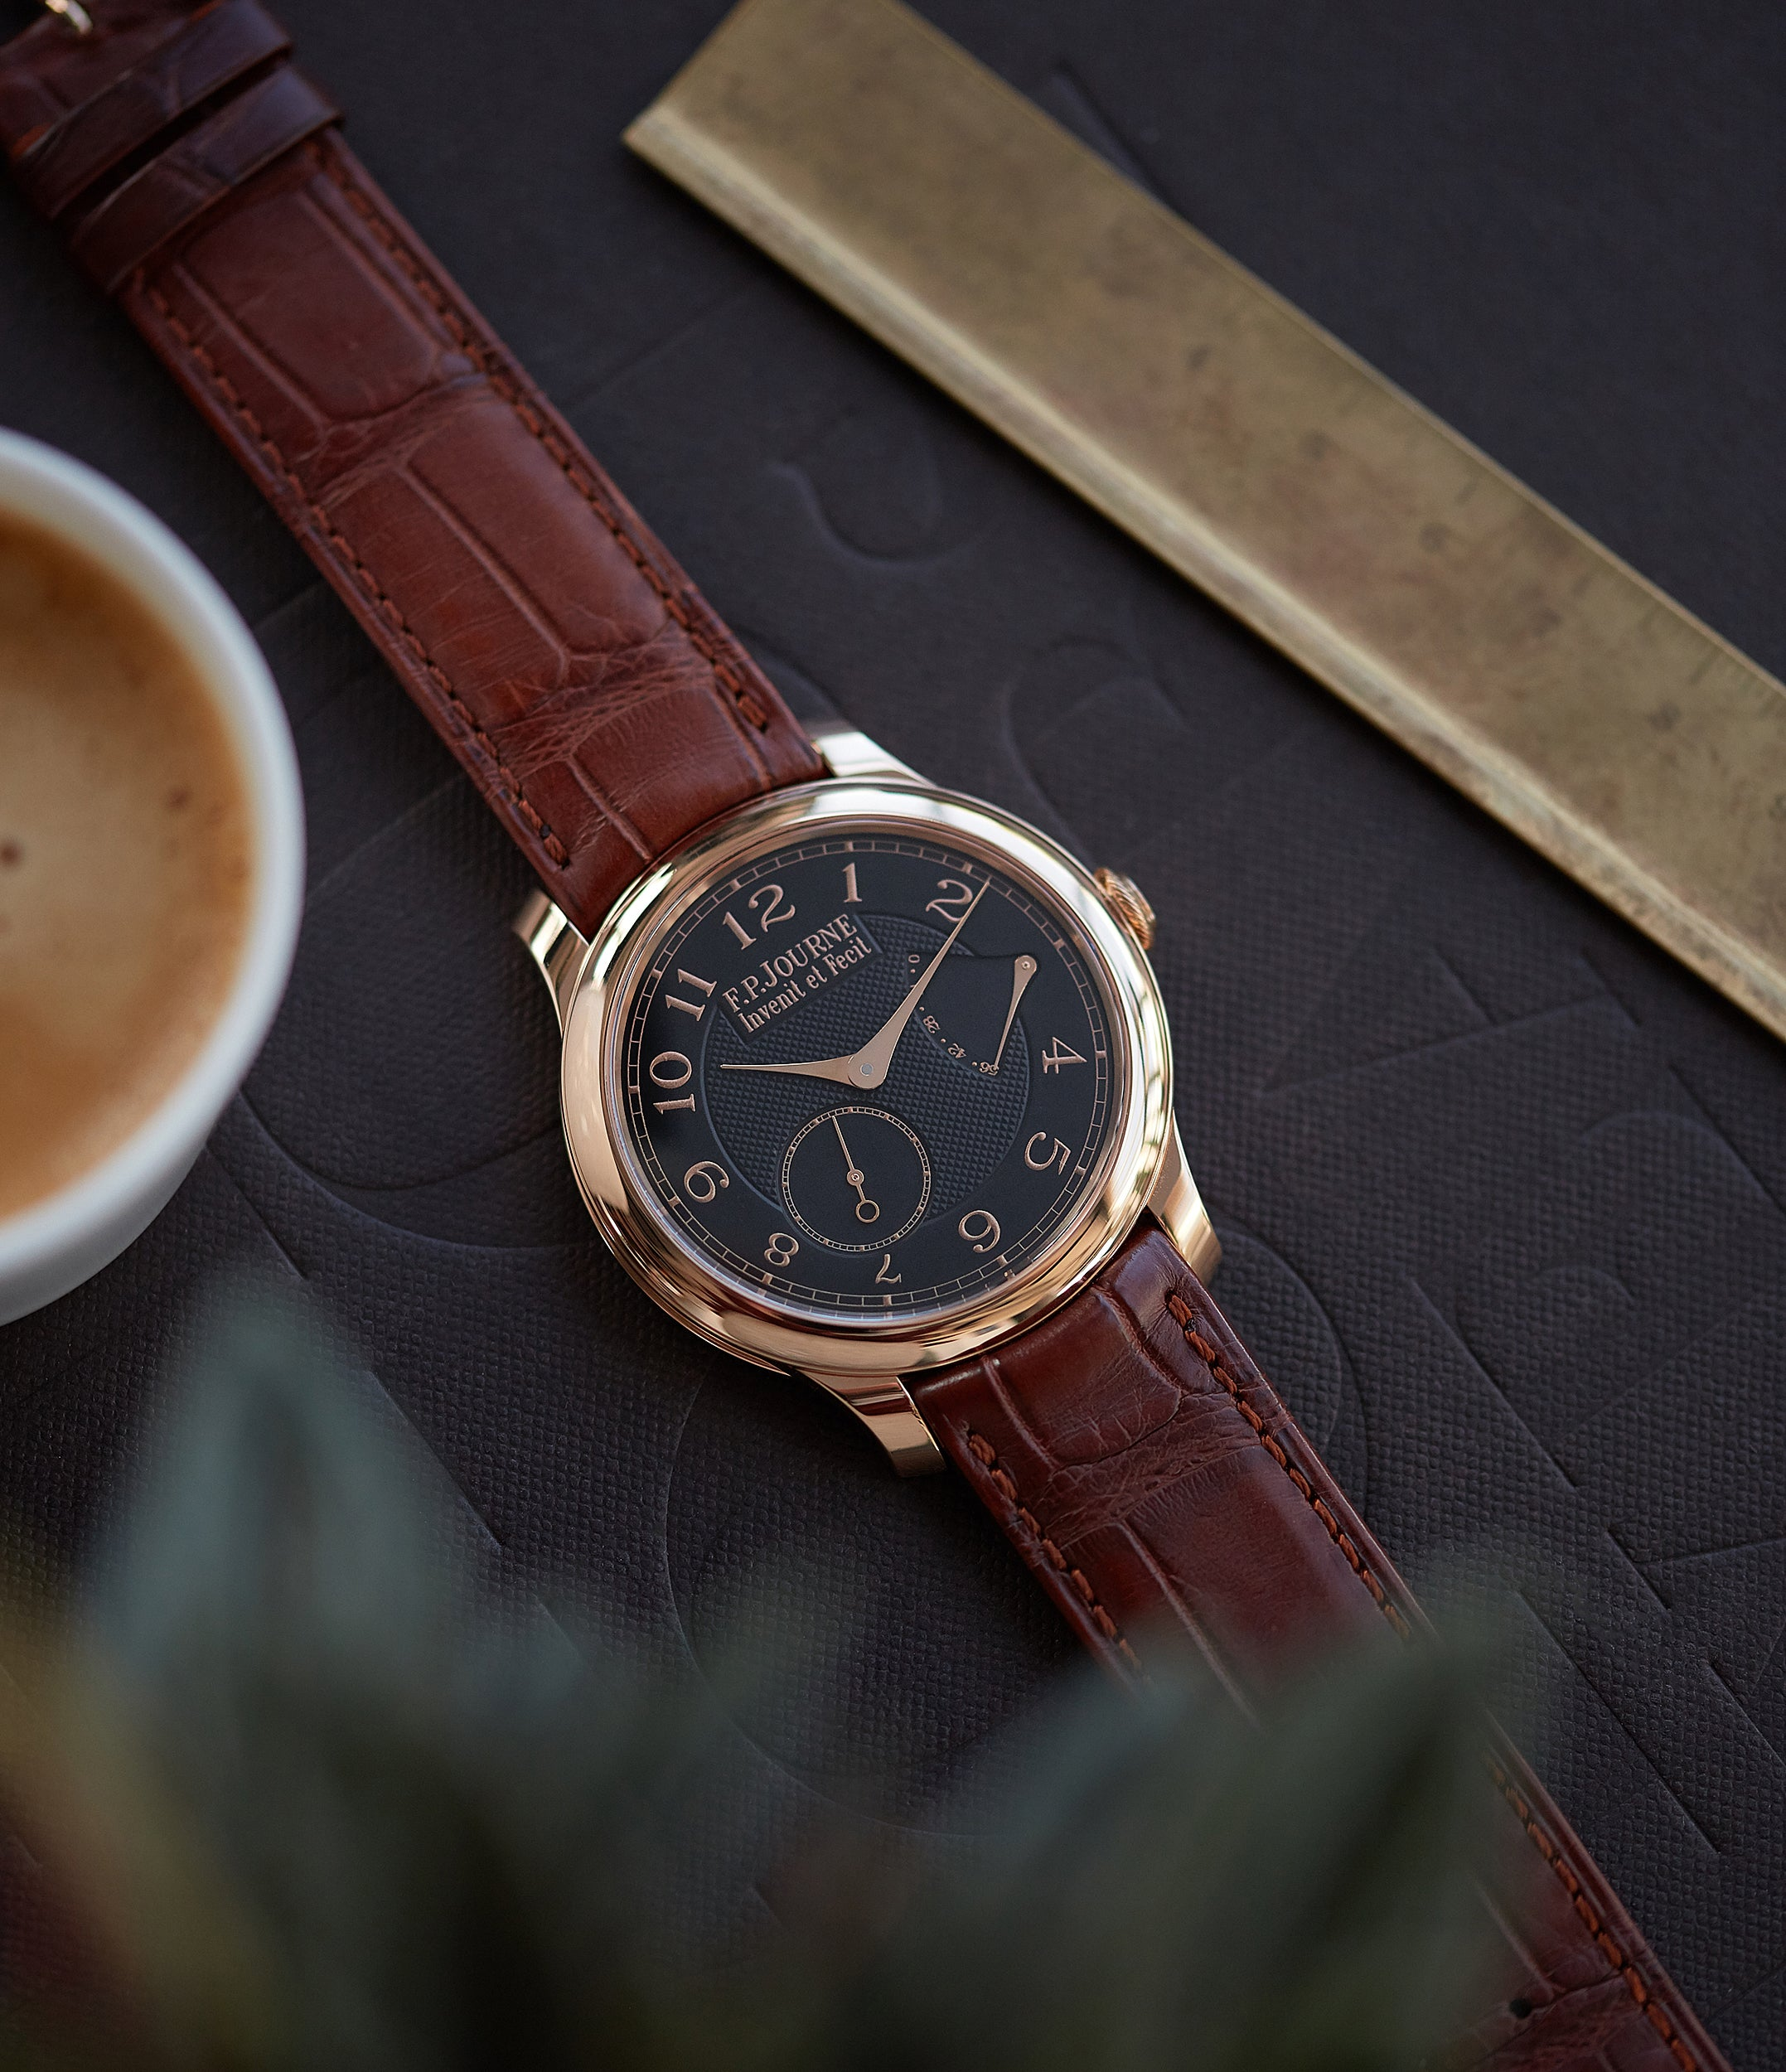 rare F. P. Journe Boutique Edition Chronometre Souverain red gold black dial rare watch independent watchmaker for sale online at A Collected Man London UK specialist of rare watches